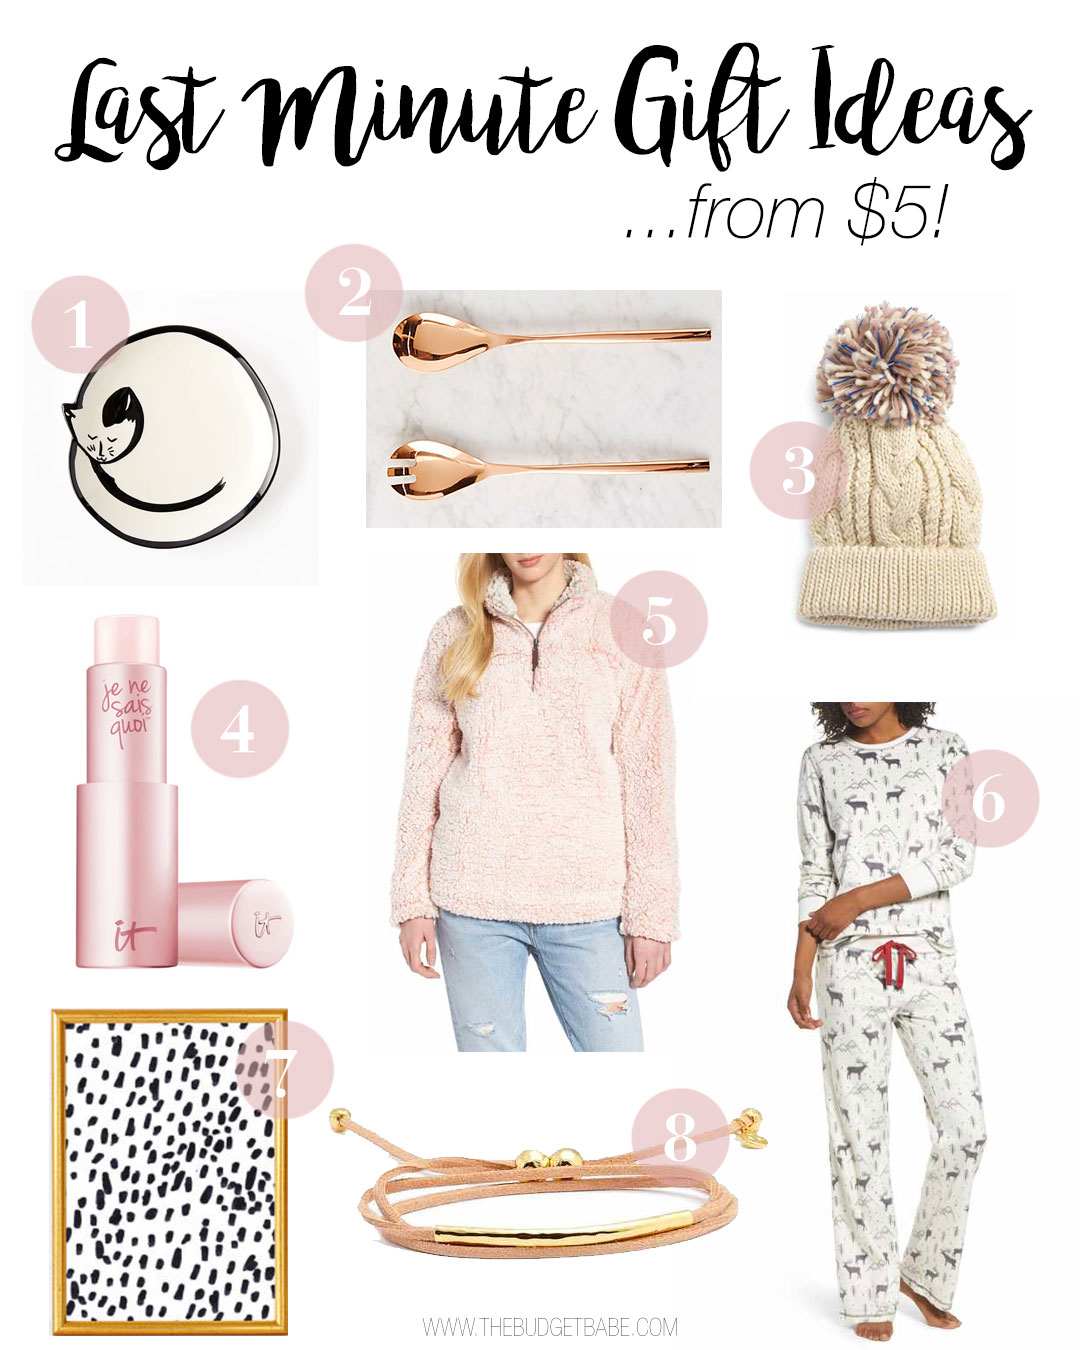 Last Minute gift ideas for girlfriends, sisters, mom and more! From just $5! Fashionable on-trend picks